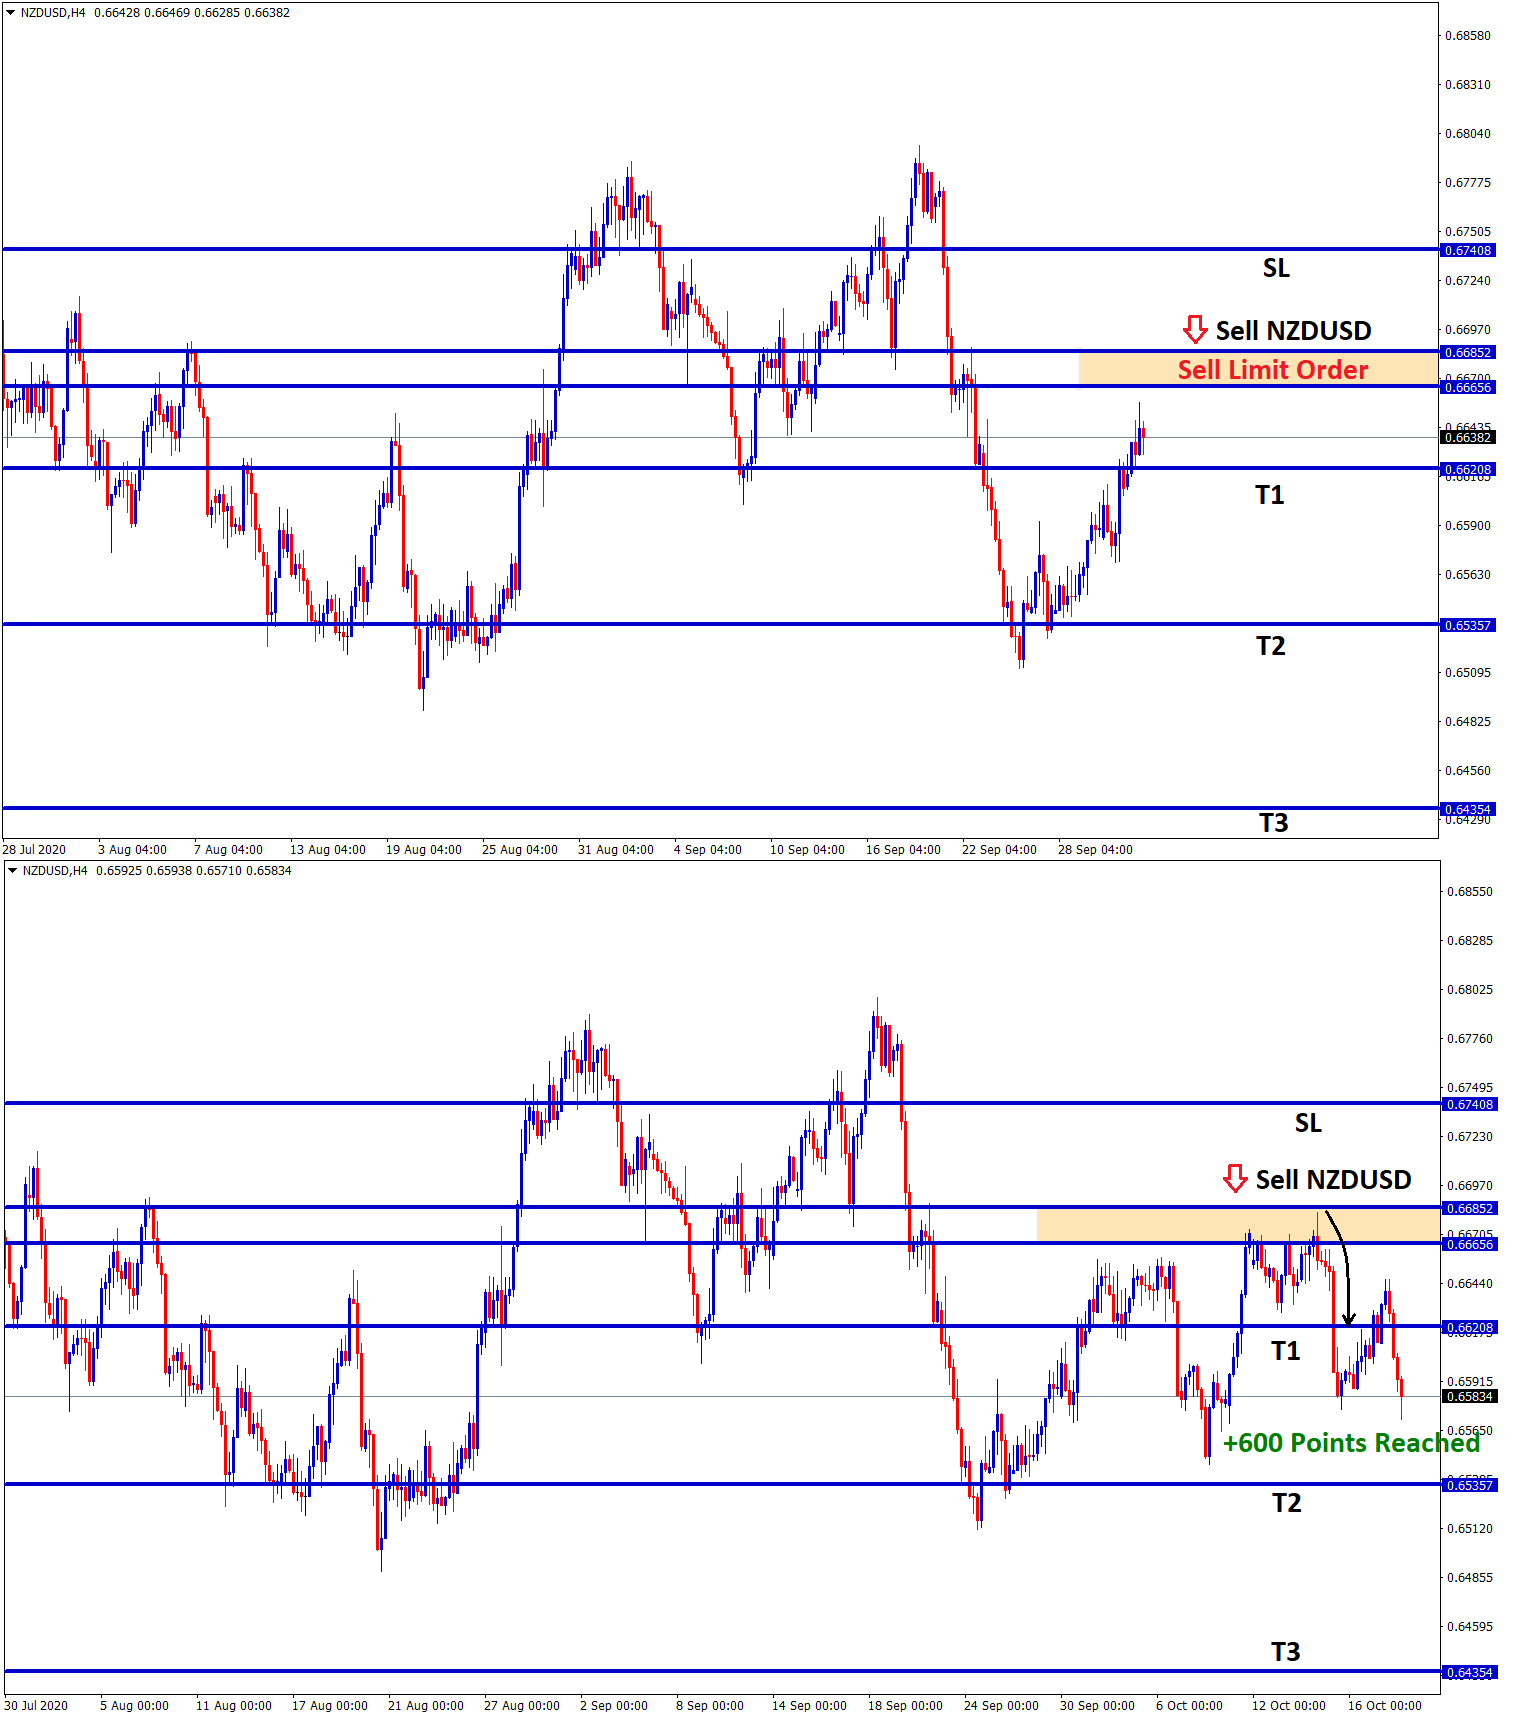 nzdusd achieved 600 Points sell limit order